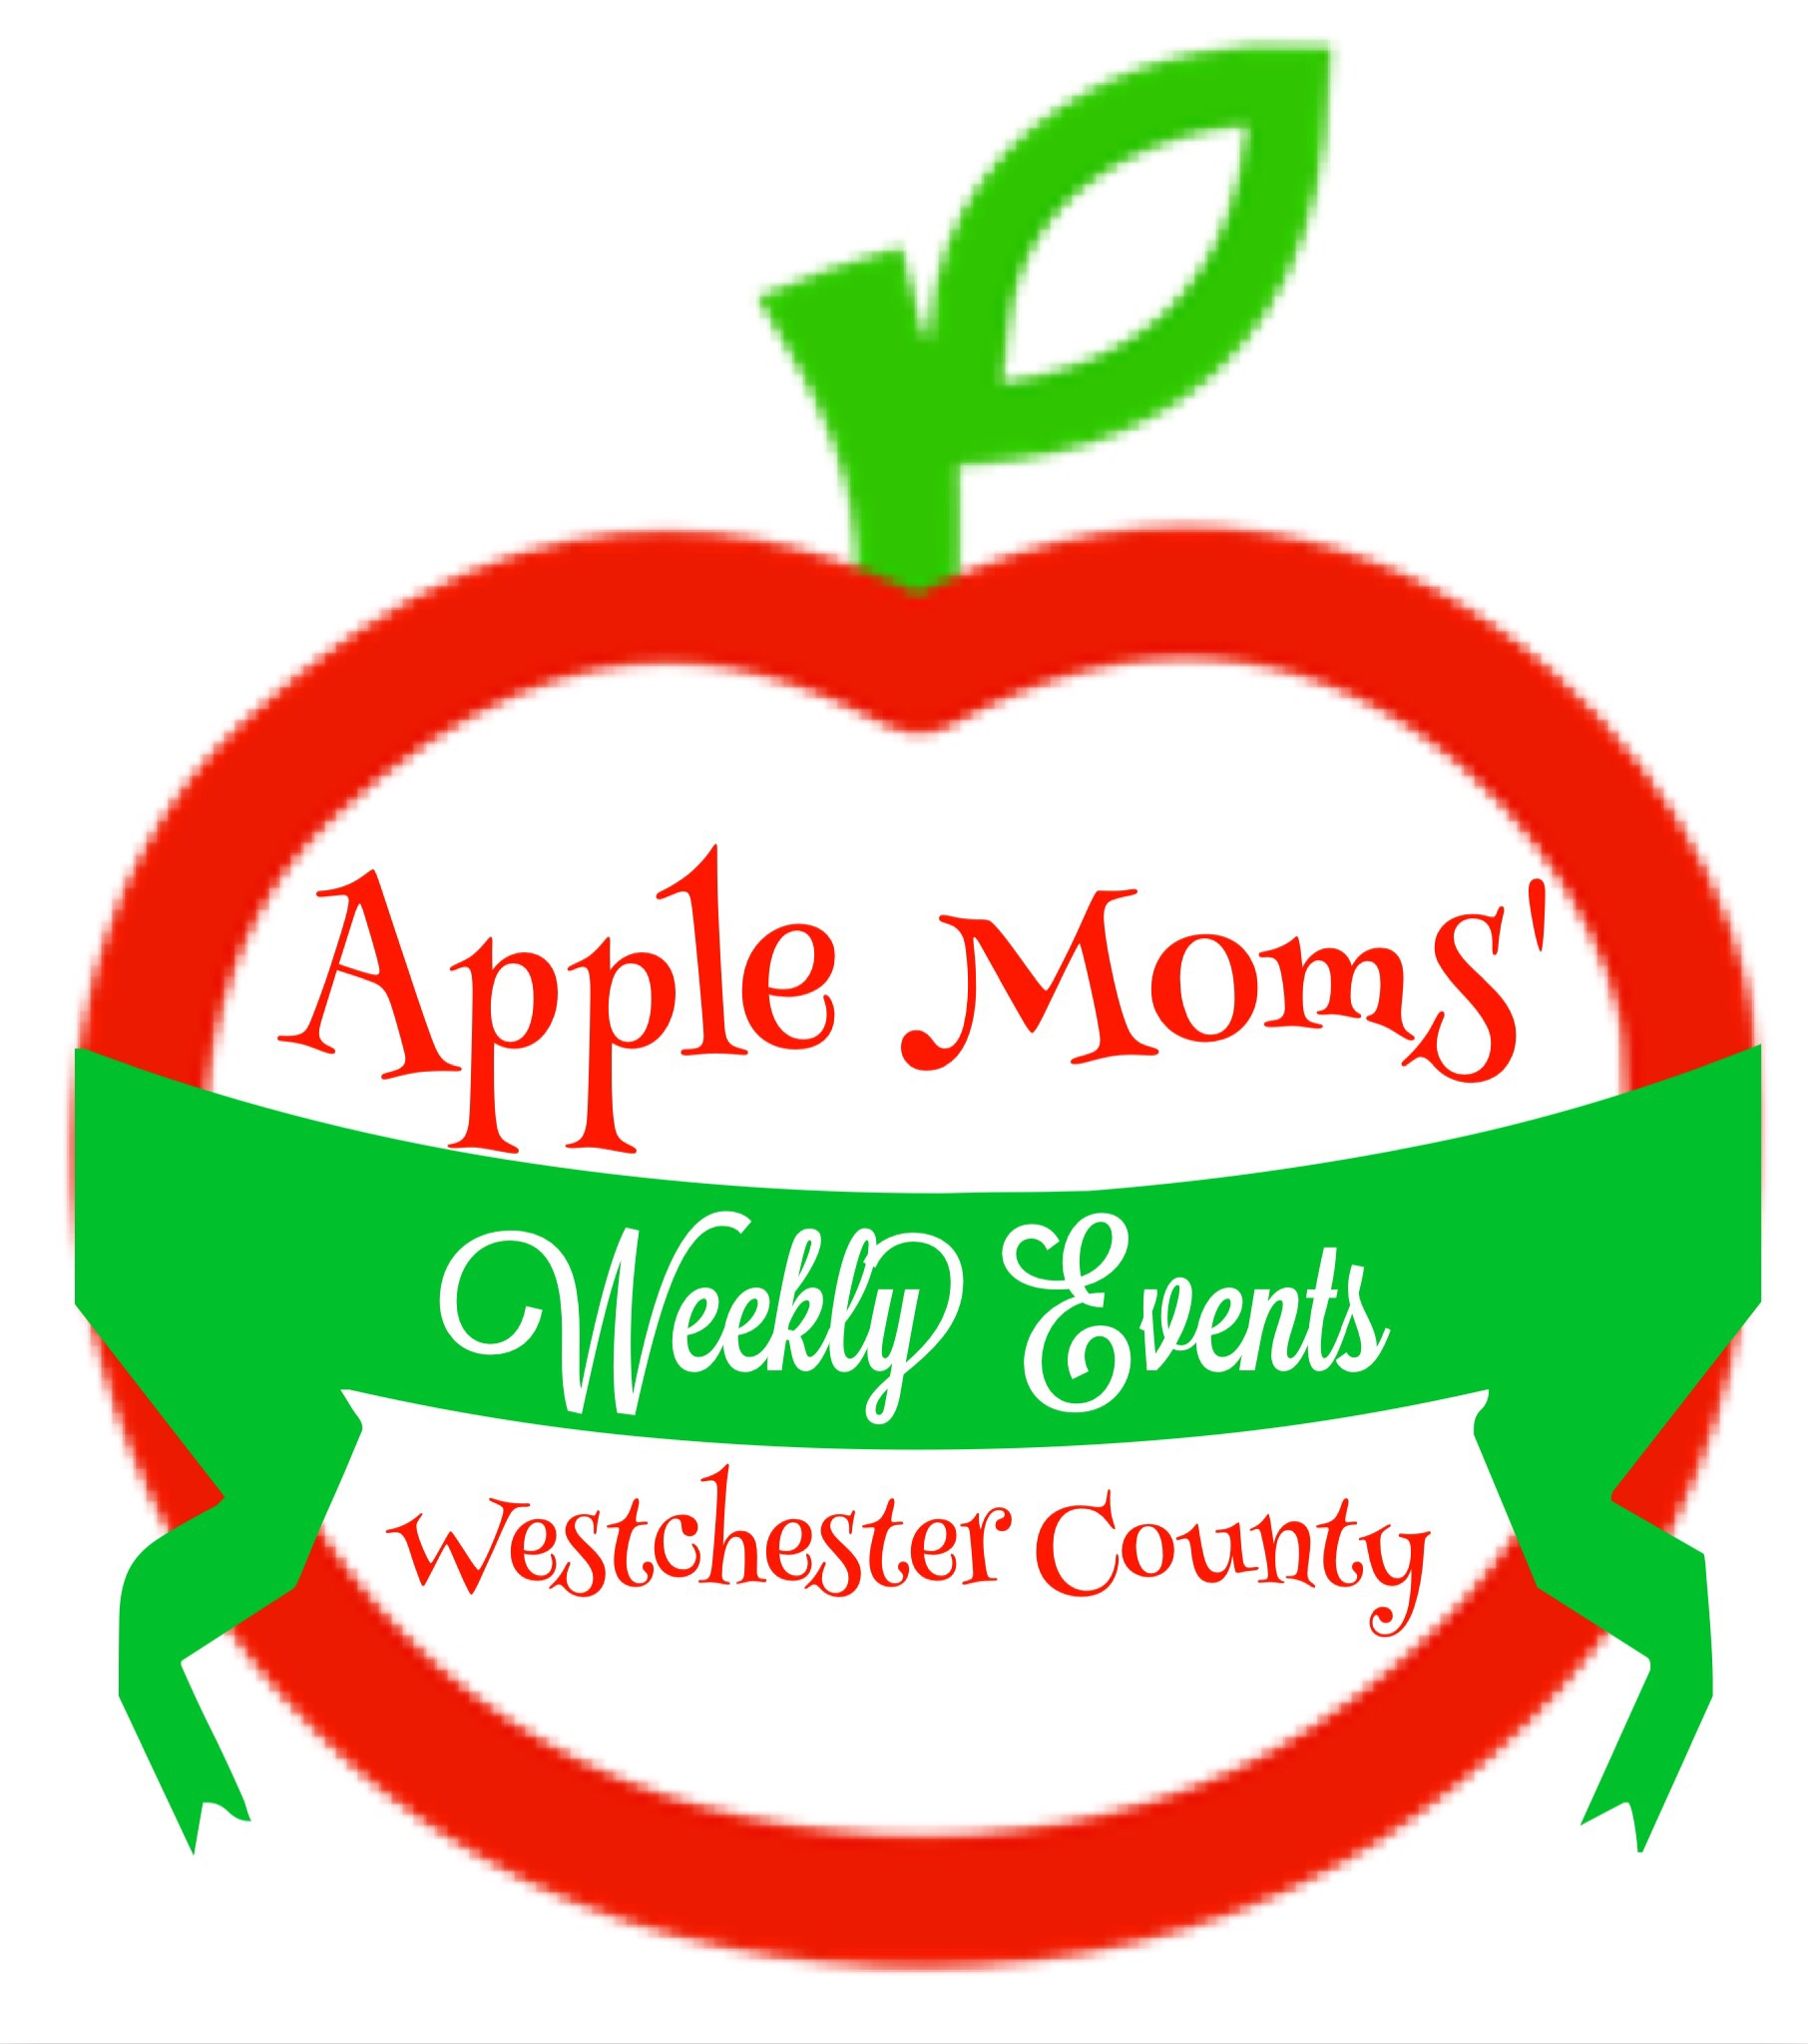 Westchester County Weekly Events 10/22-10/28